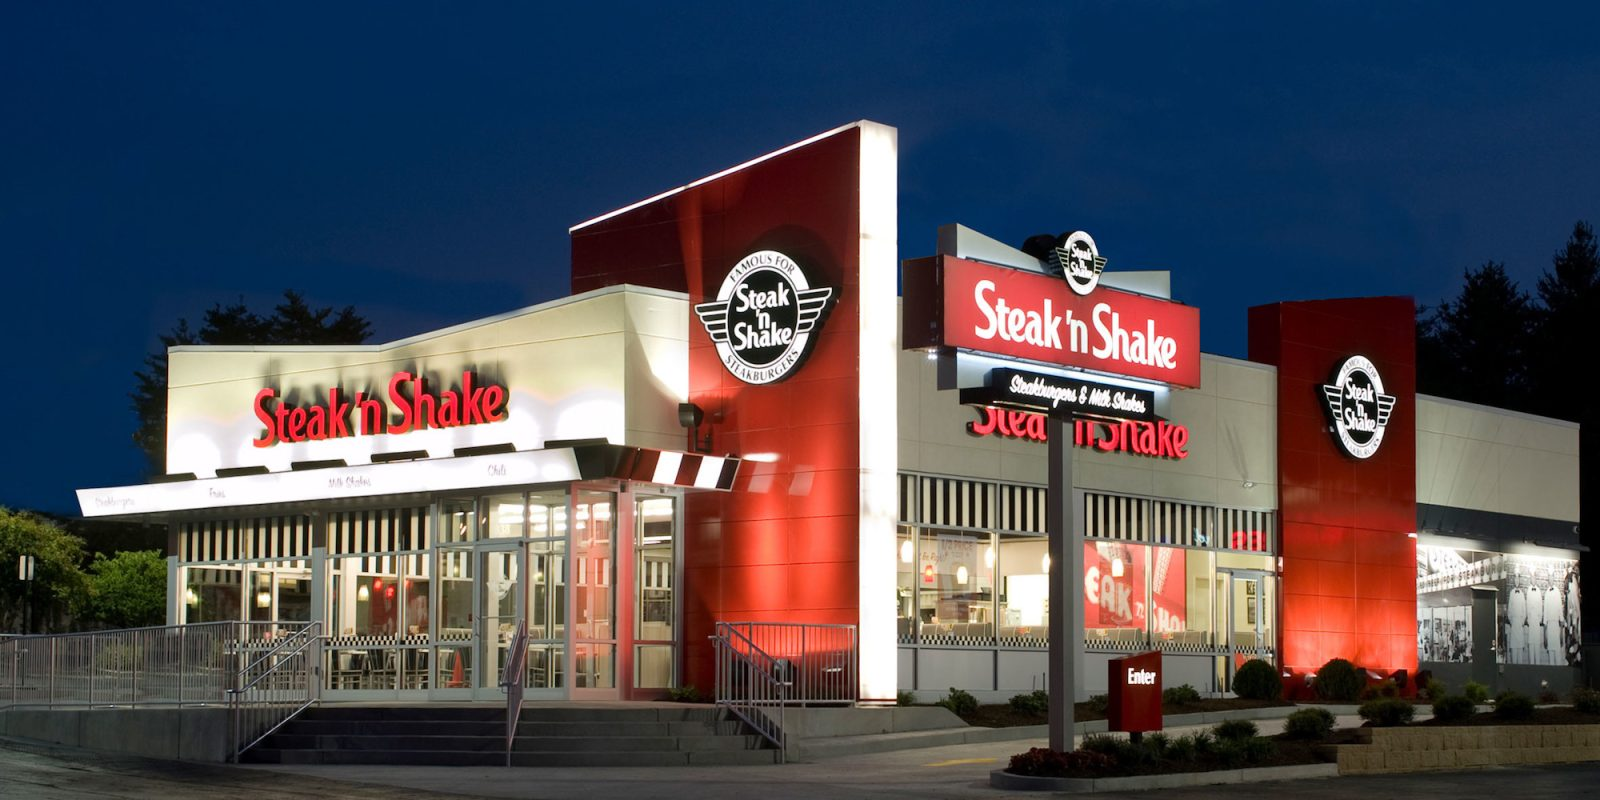 Gift cards up to 20% off: Steak 'n Shake, Lowe's and Southwest Airlines